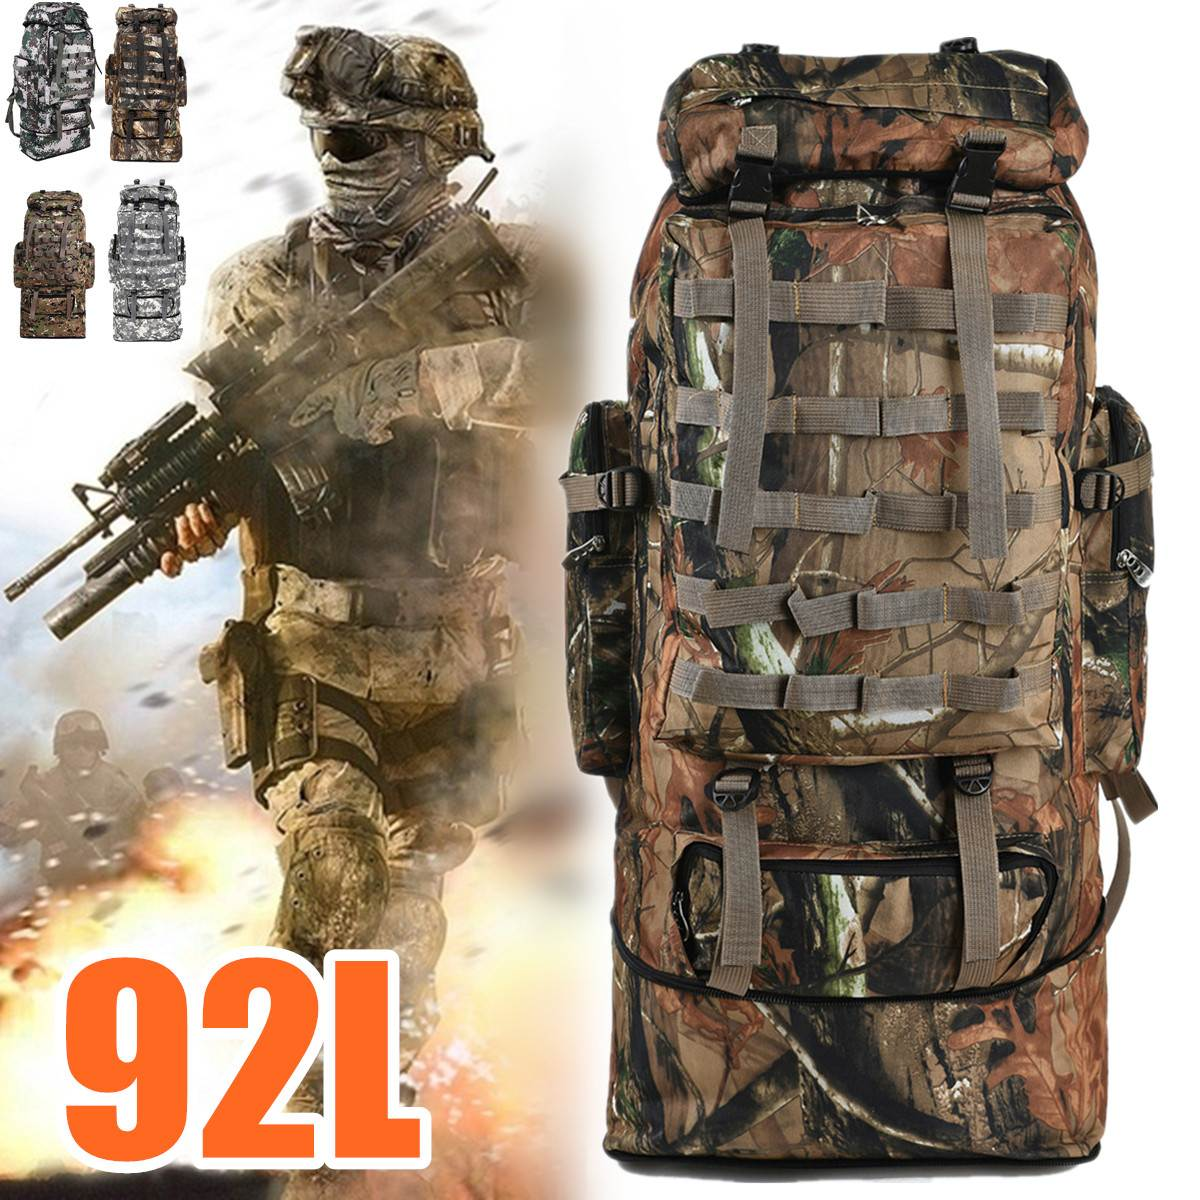 Men Backpack Army Military Tactical 92L Large Capacity Waterproof Outdoor Travel Hiking Camping Hunting 3D Rucksack Bags For Men